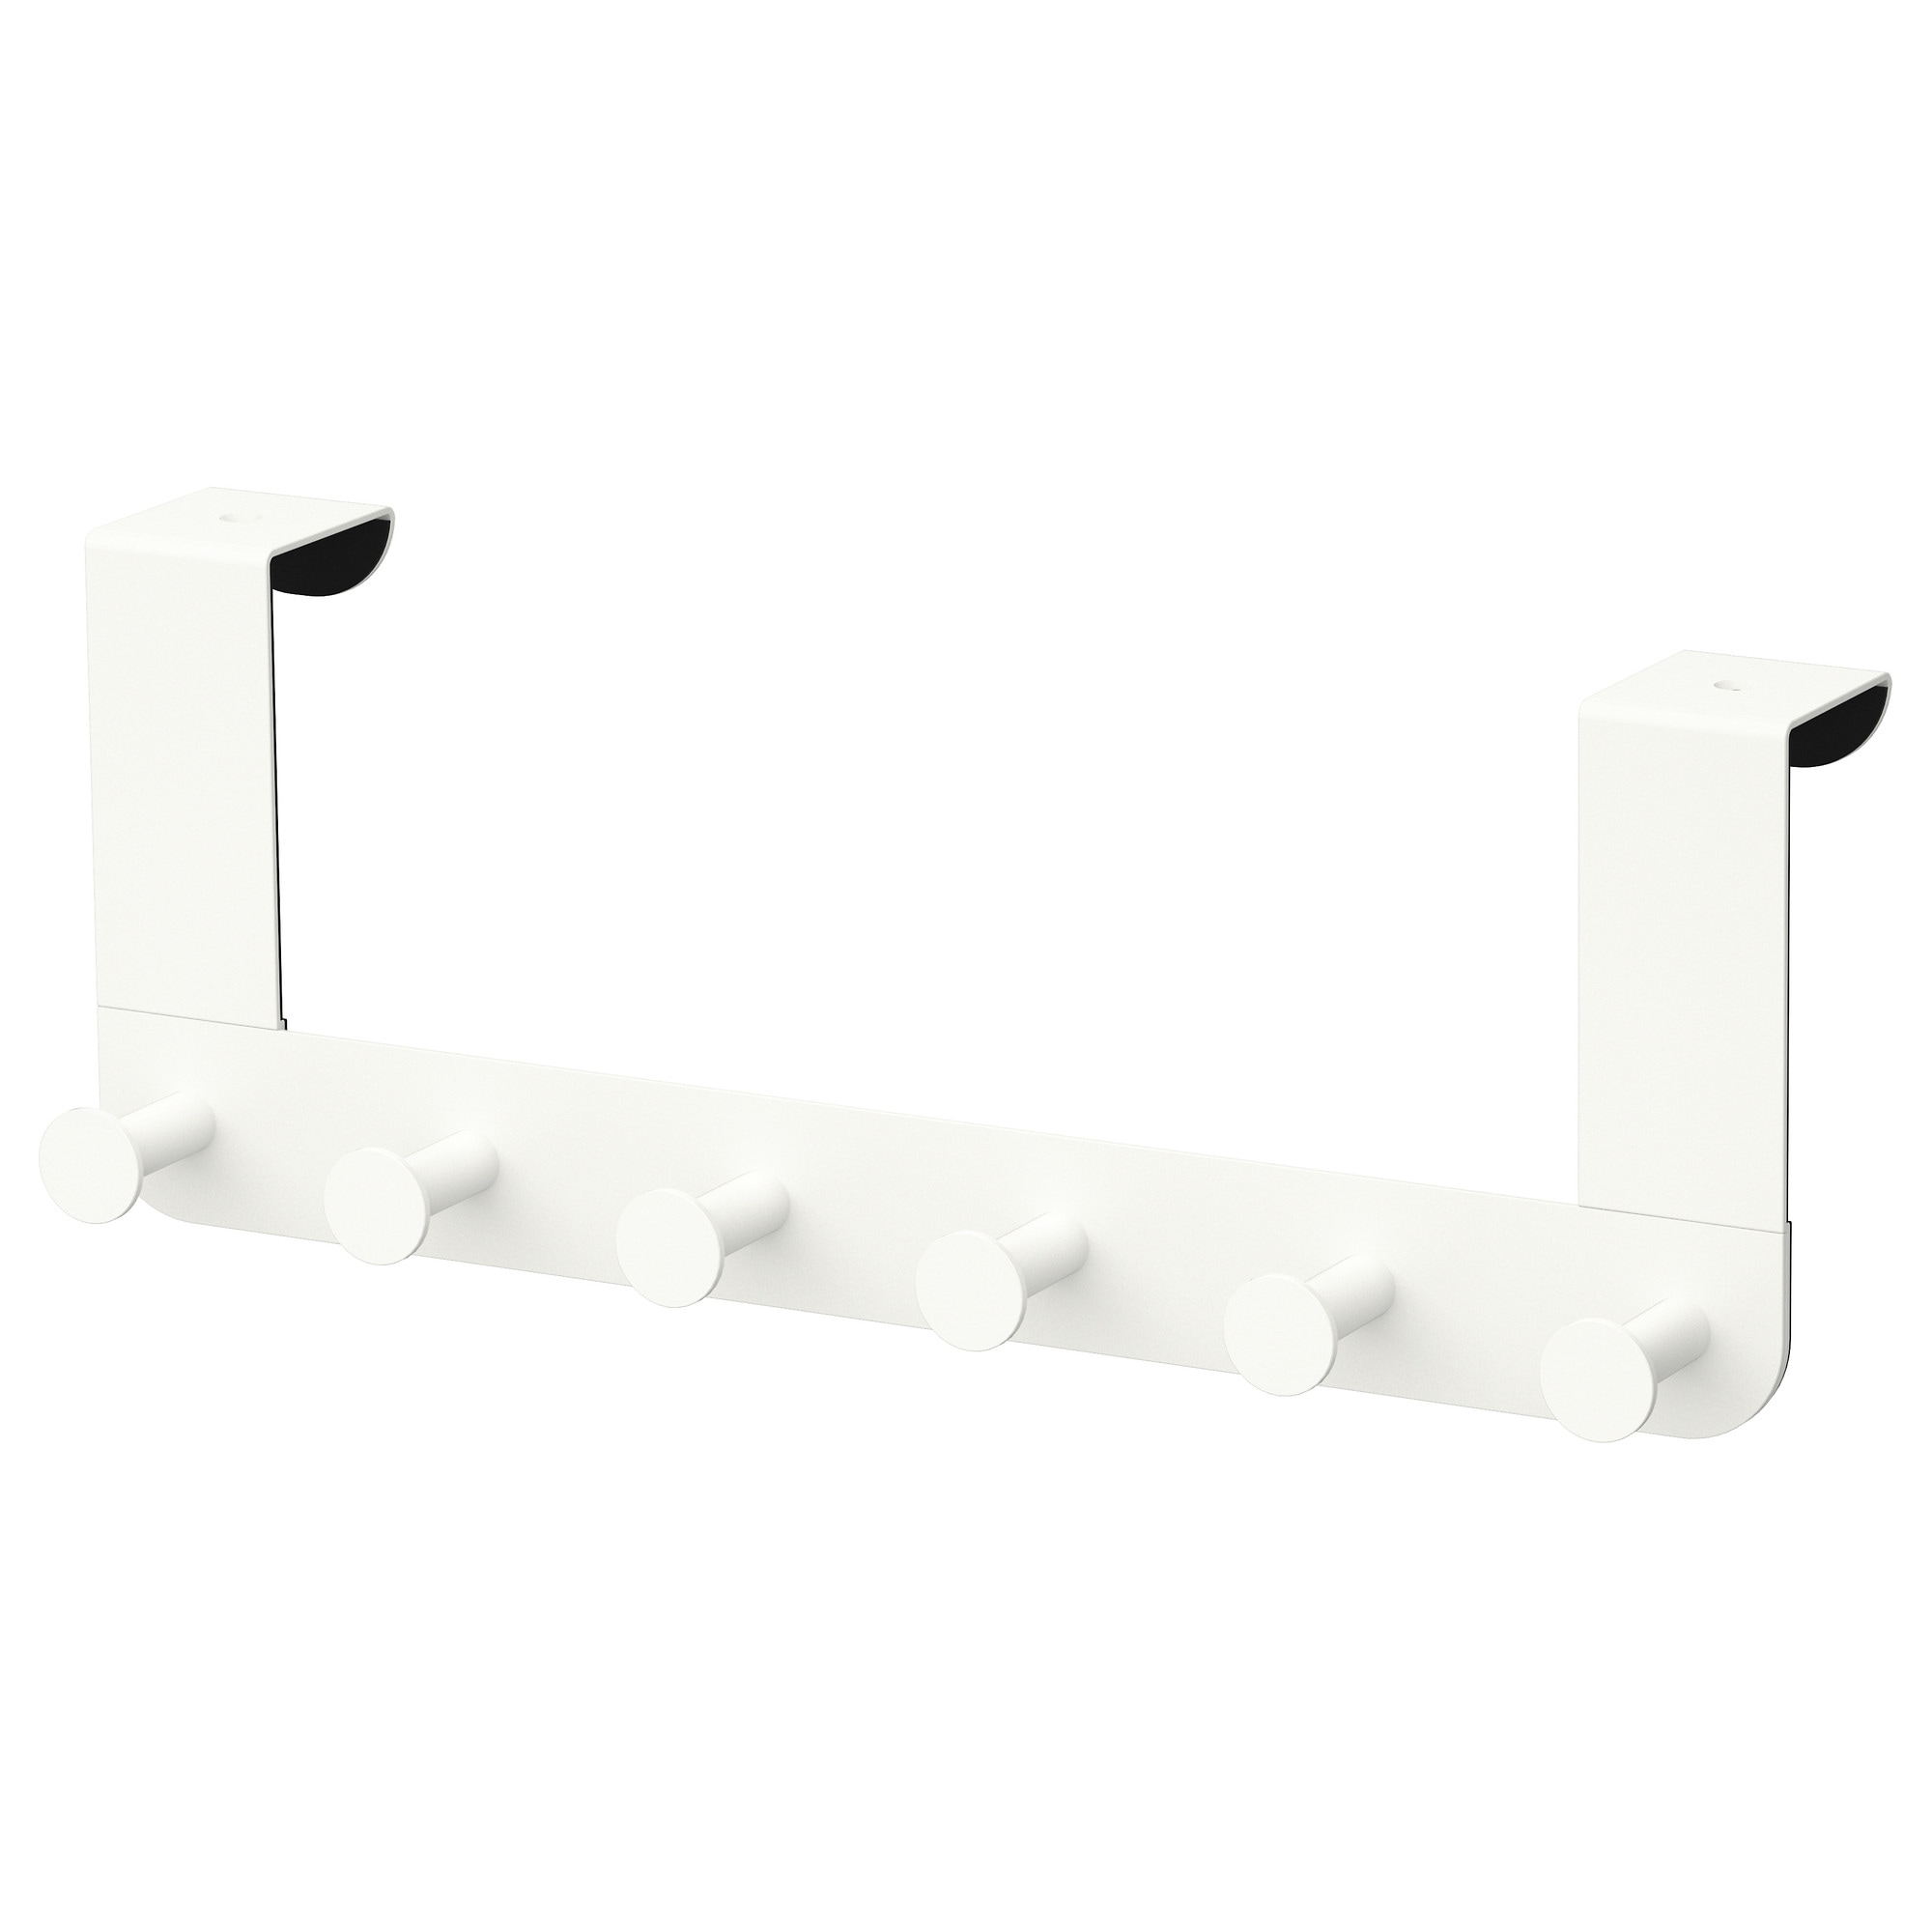 ENUDDEN hanger for door  white Width  13     Height  5 1. Towel Rails   Holders   IKEA